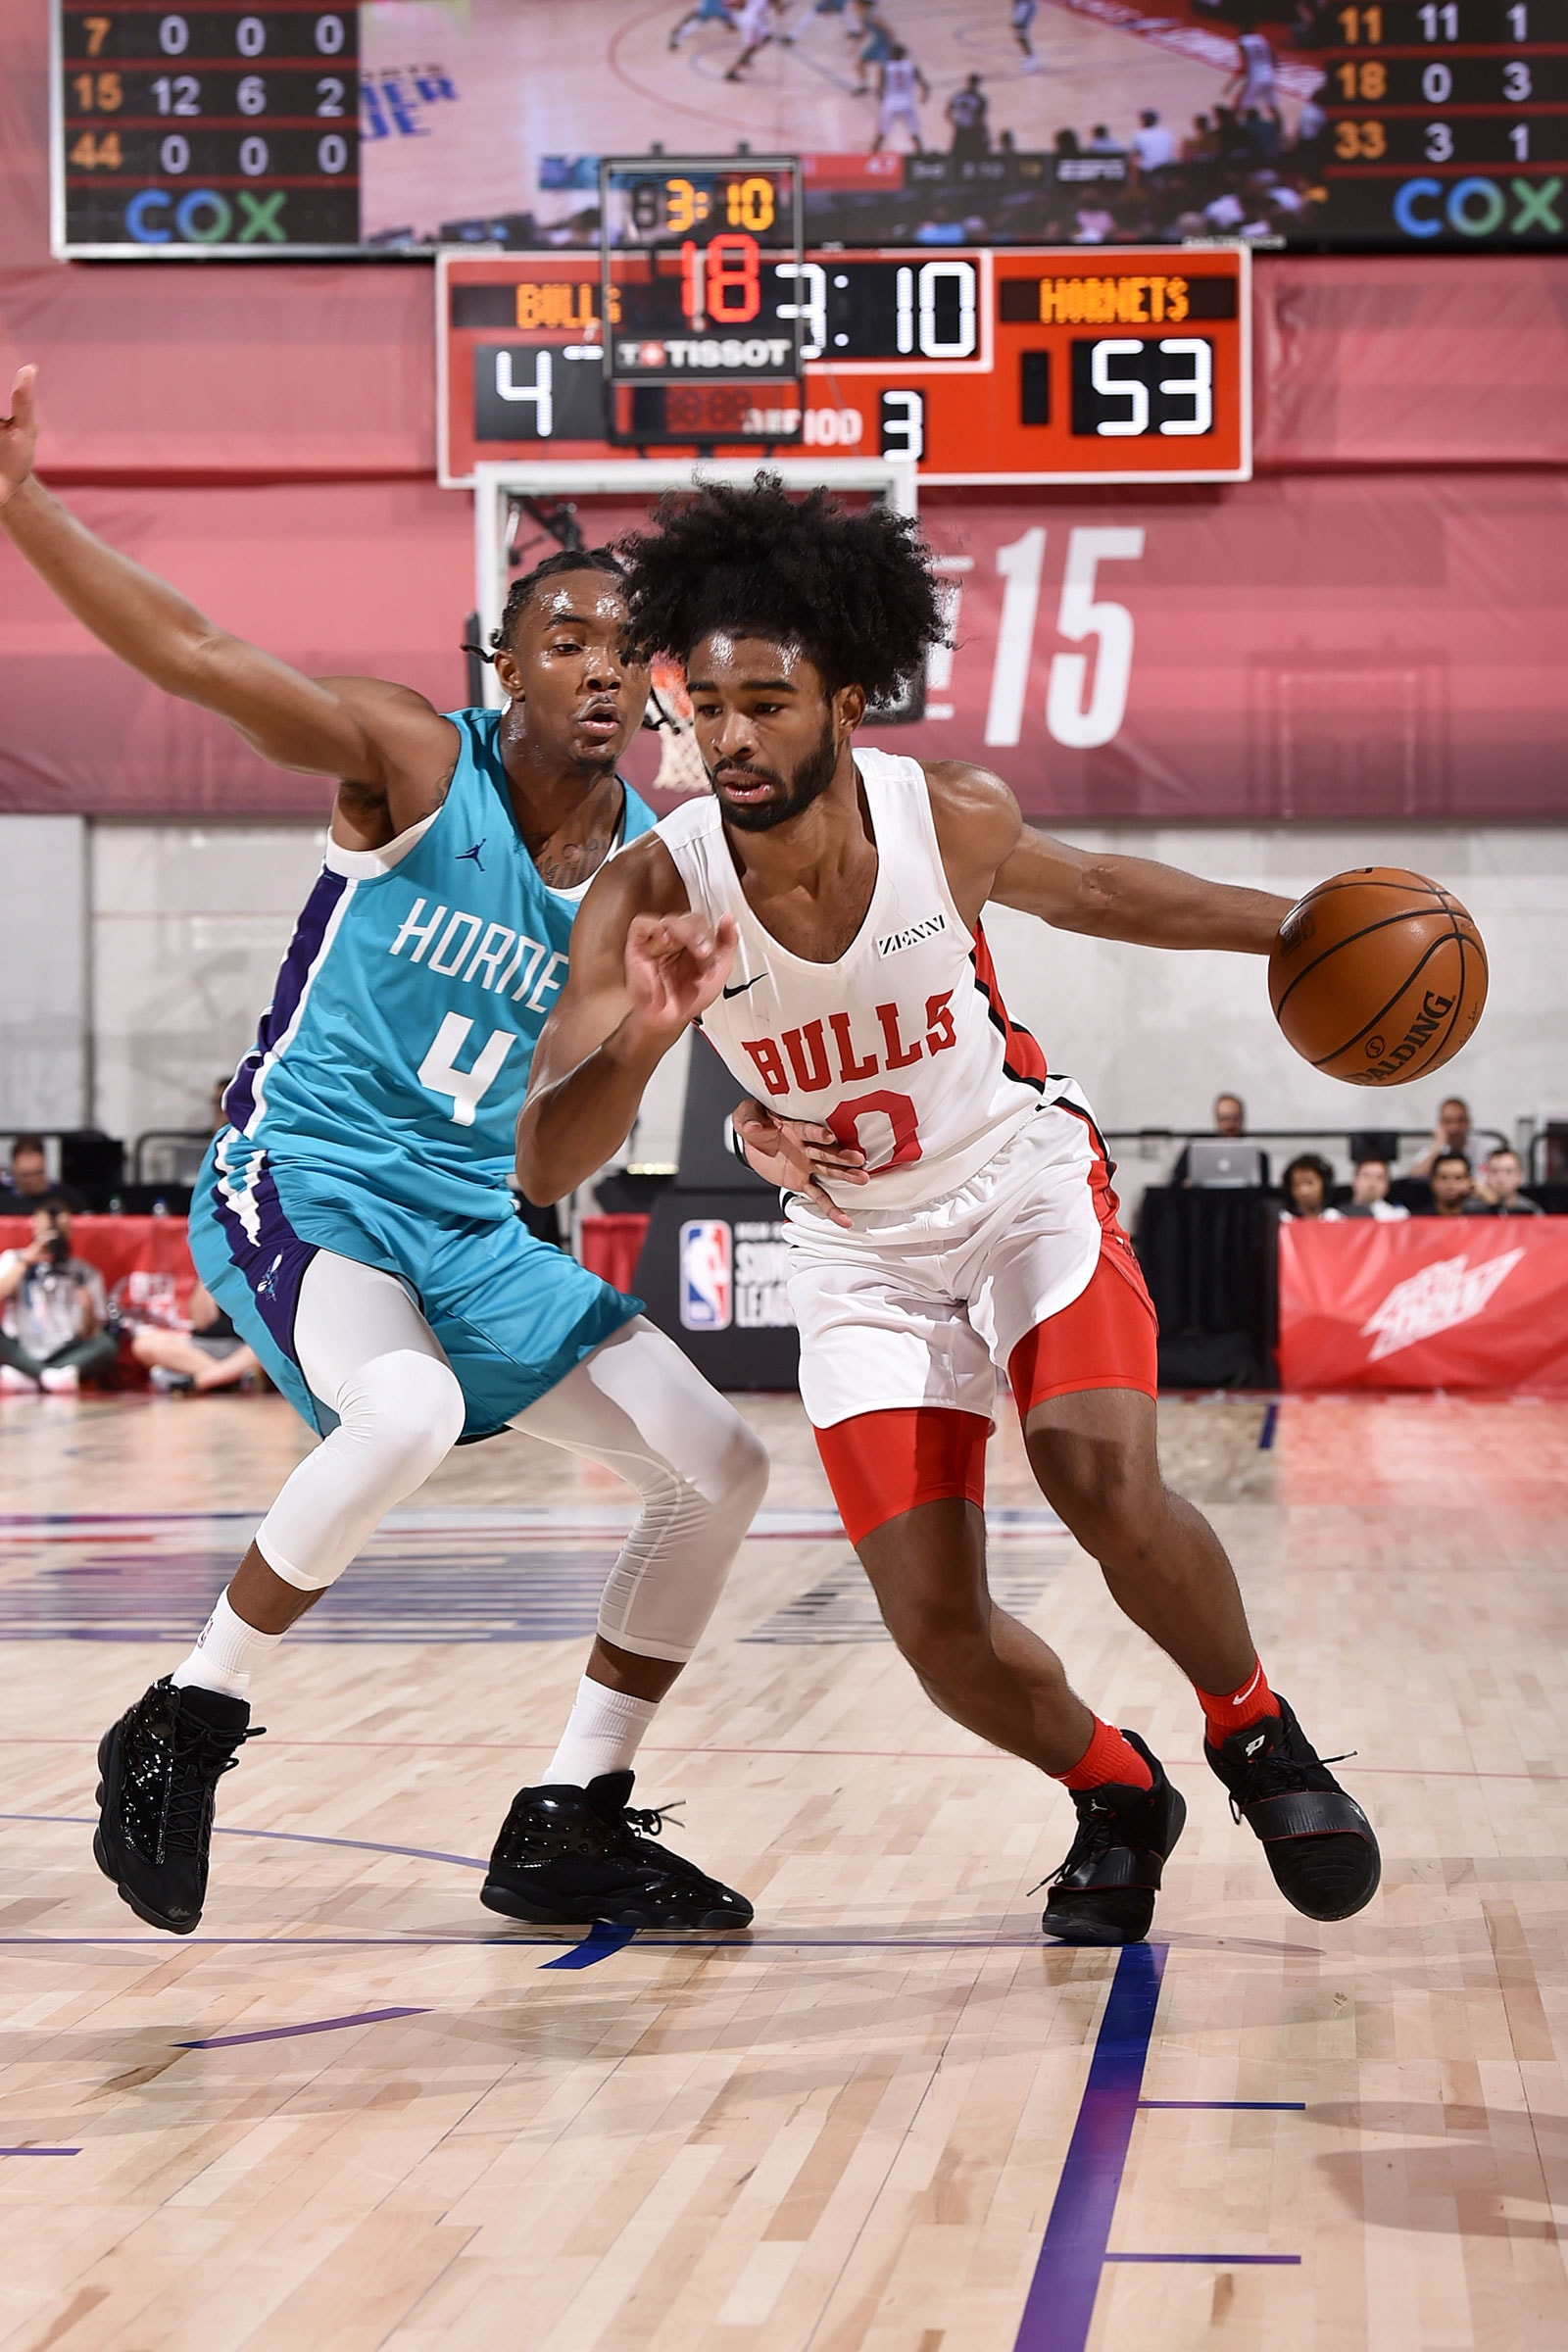 Coby White #0 of the Chicago Bulls handles the ball against the Charlotte Hornets on July 10, 2019 at the Cox Pavilion in Las Vegas, Nevada.